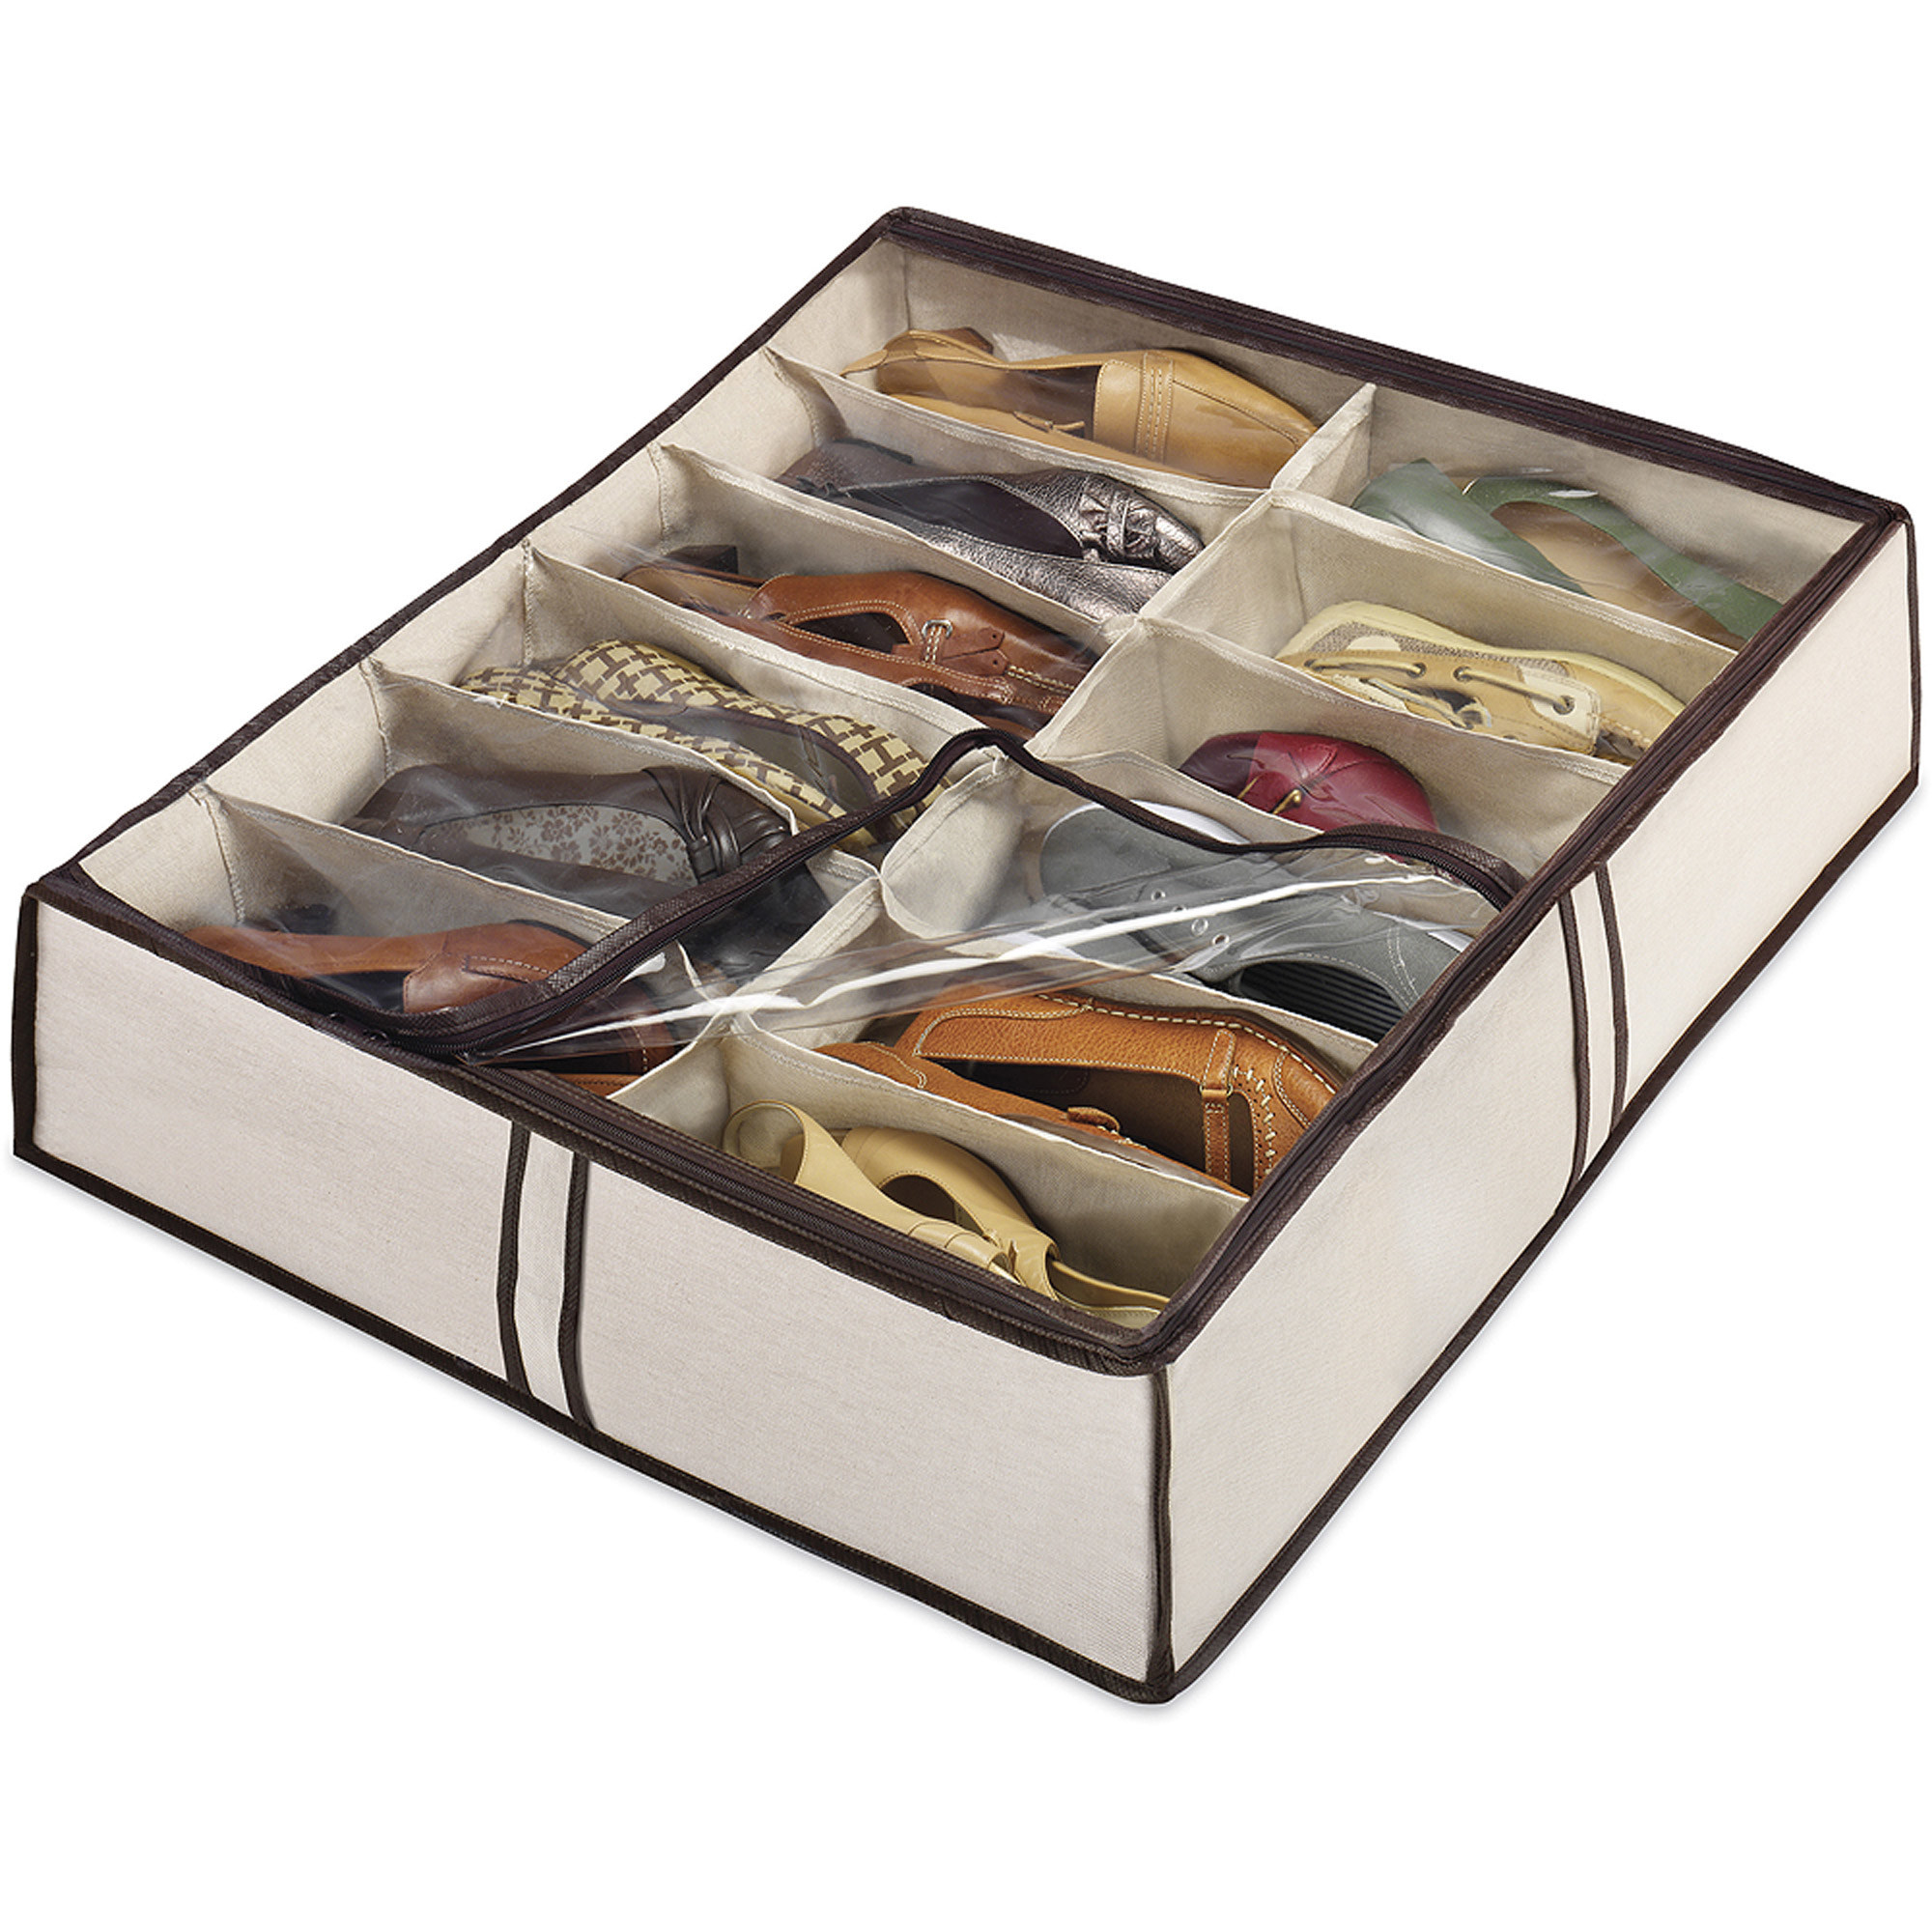 a zippered shoe bag with 12 pairs of shoes in it